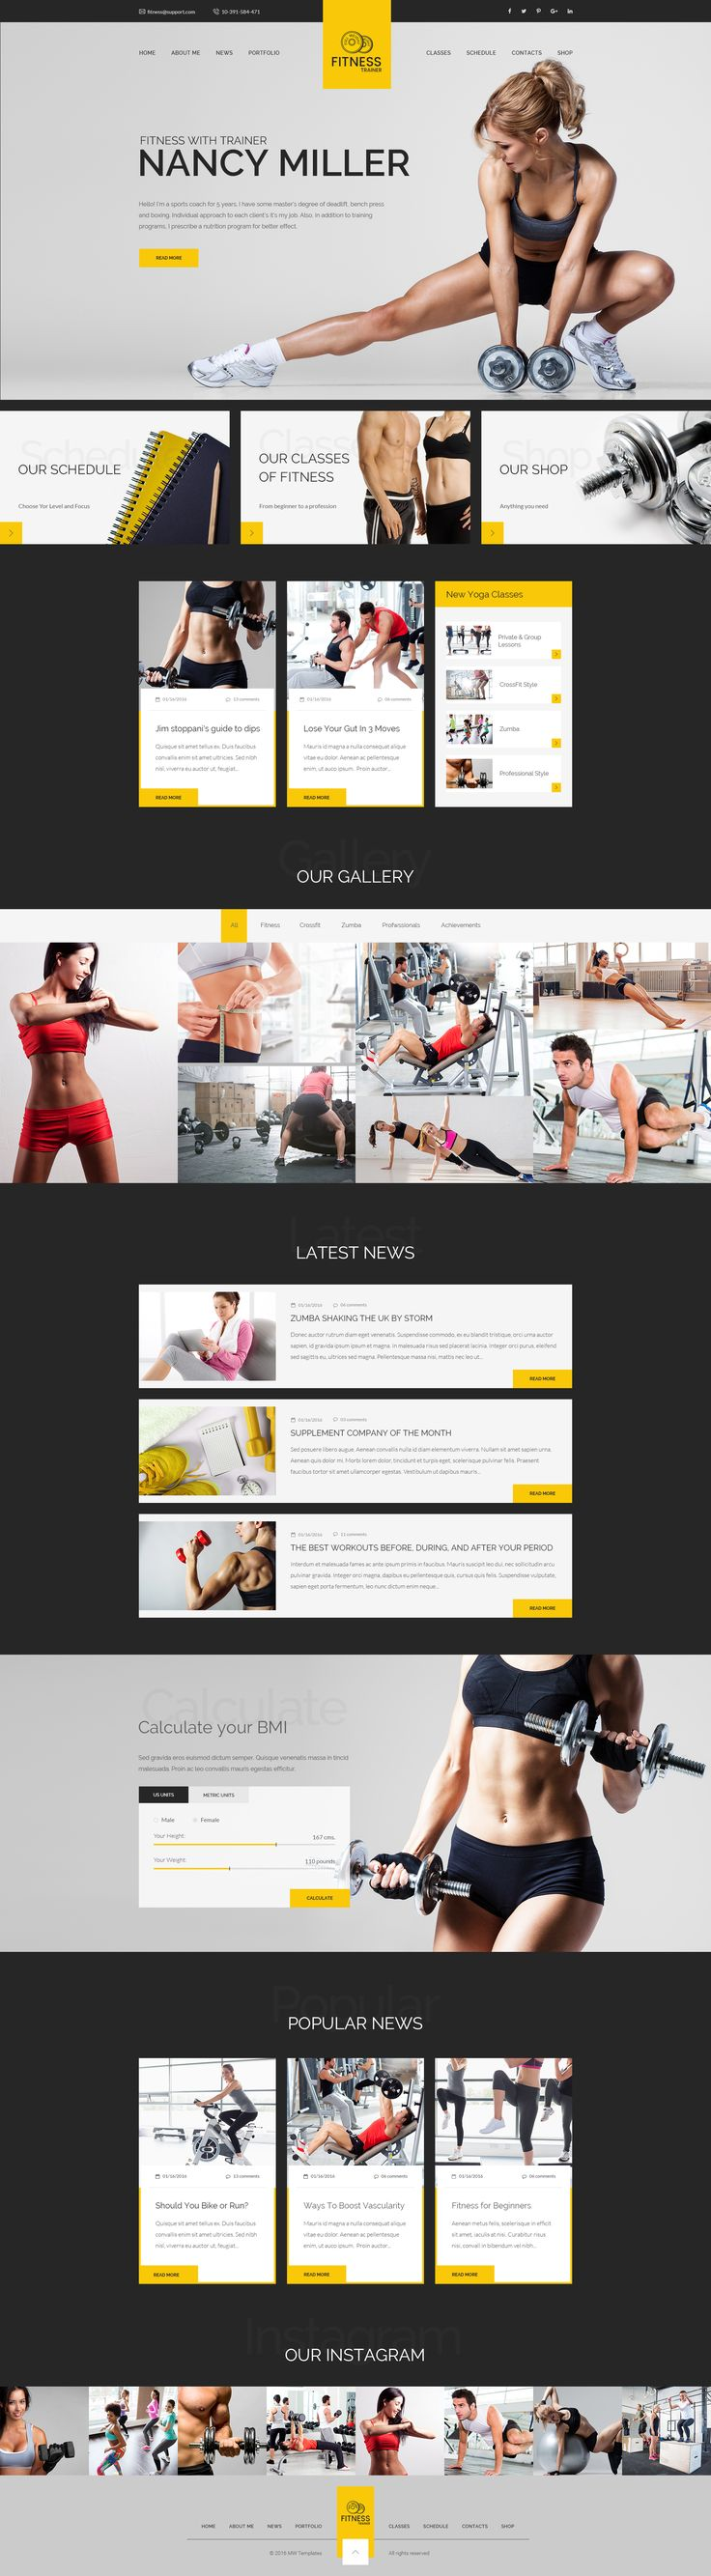 15 best Responsive Umbraco Theme Designs images on Pinterest ...